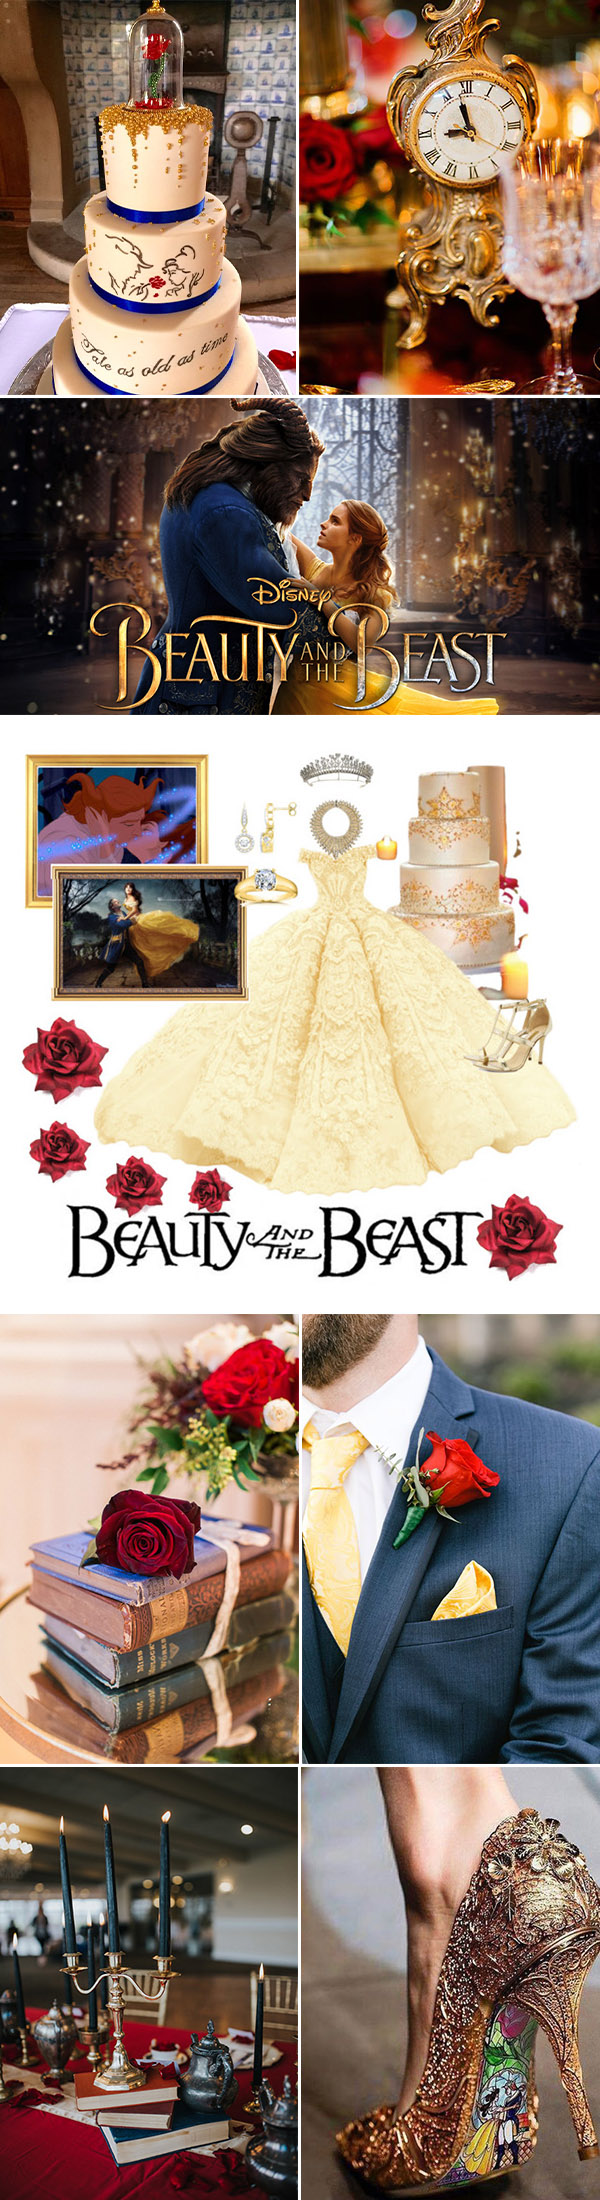 30 Charming Beauty and the Beast Inspired Fairy Tale Wedding Ideas